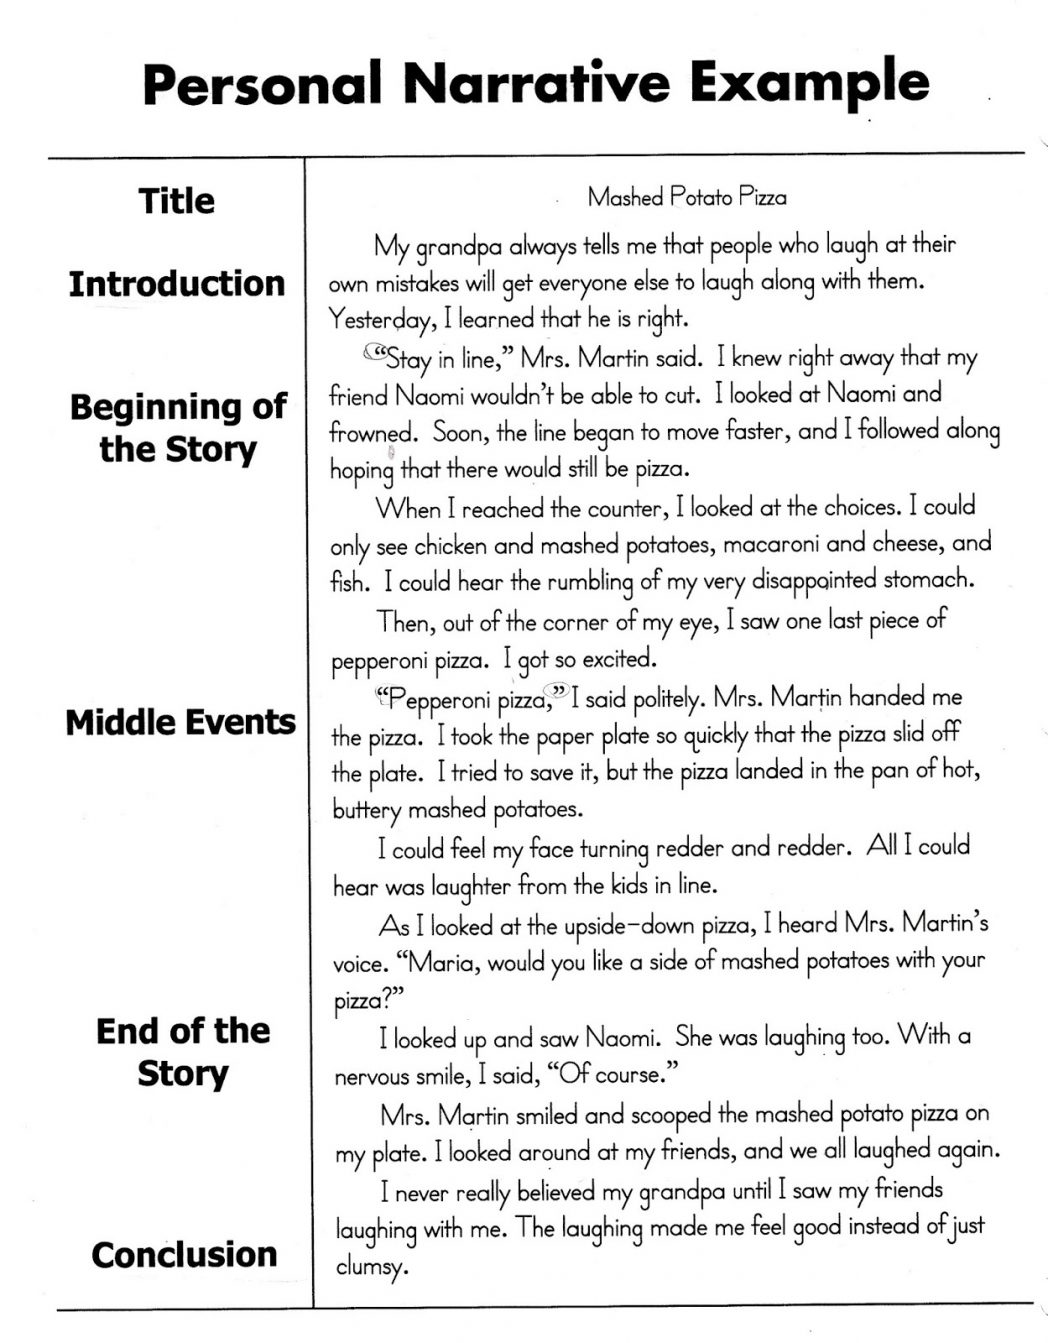 008 Good Narrative Essay Topics Macbeth Topic Sample High School For College Students Personal Prompts 1048x1343 Stirring Descriptive Grade 8